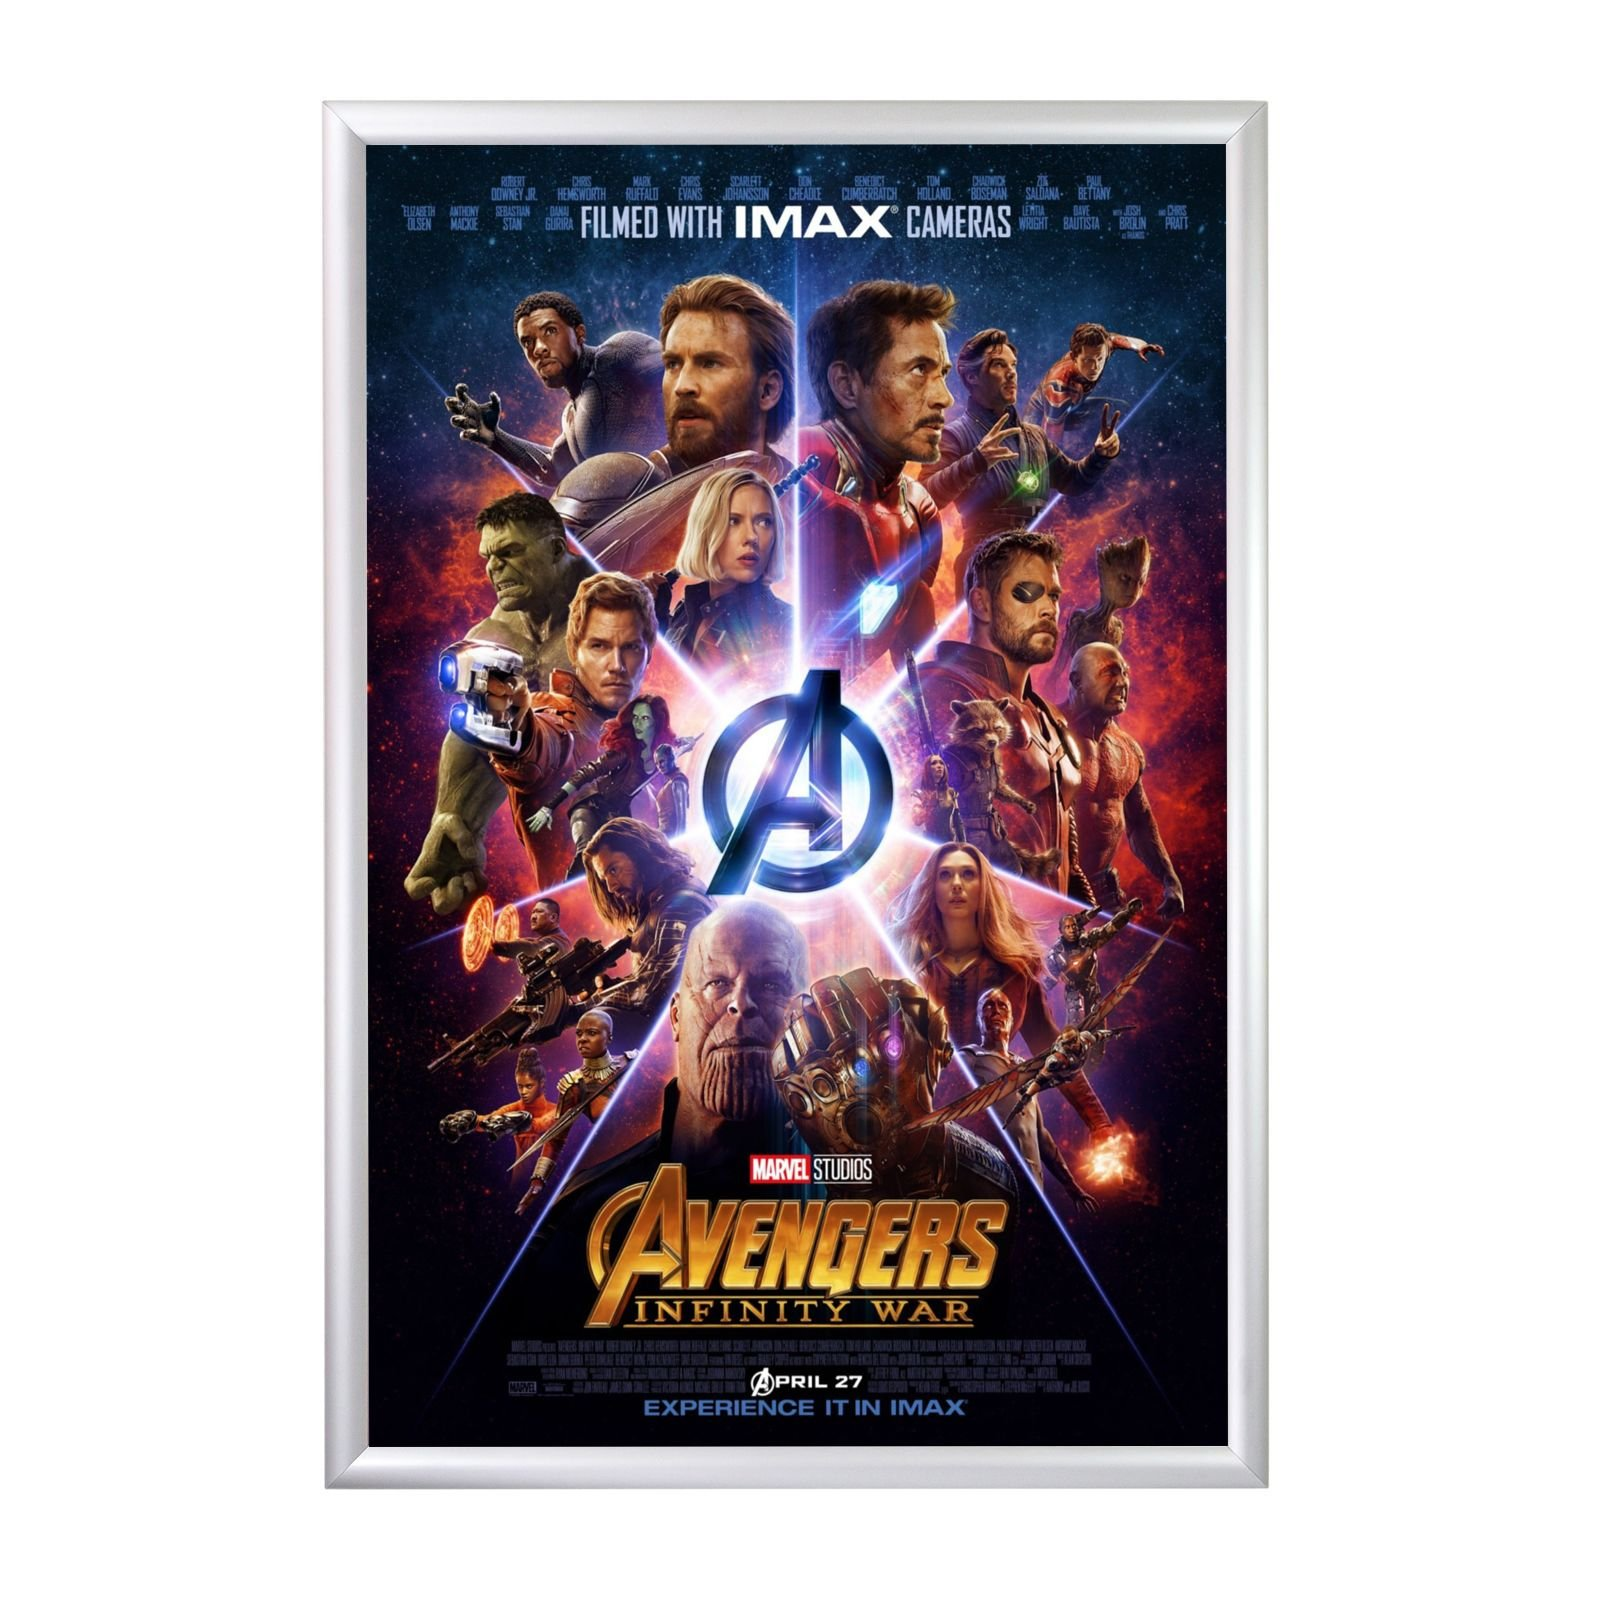 snapezo movie poster frame 27x40 inches silver 1 2 aluminum profile front 616641962333 ebay. Black Bedroom Furniture Sets. Home Design Ideas